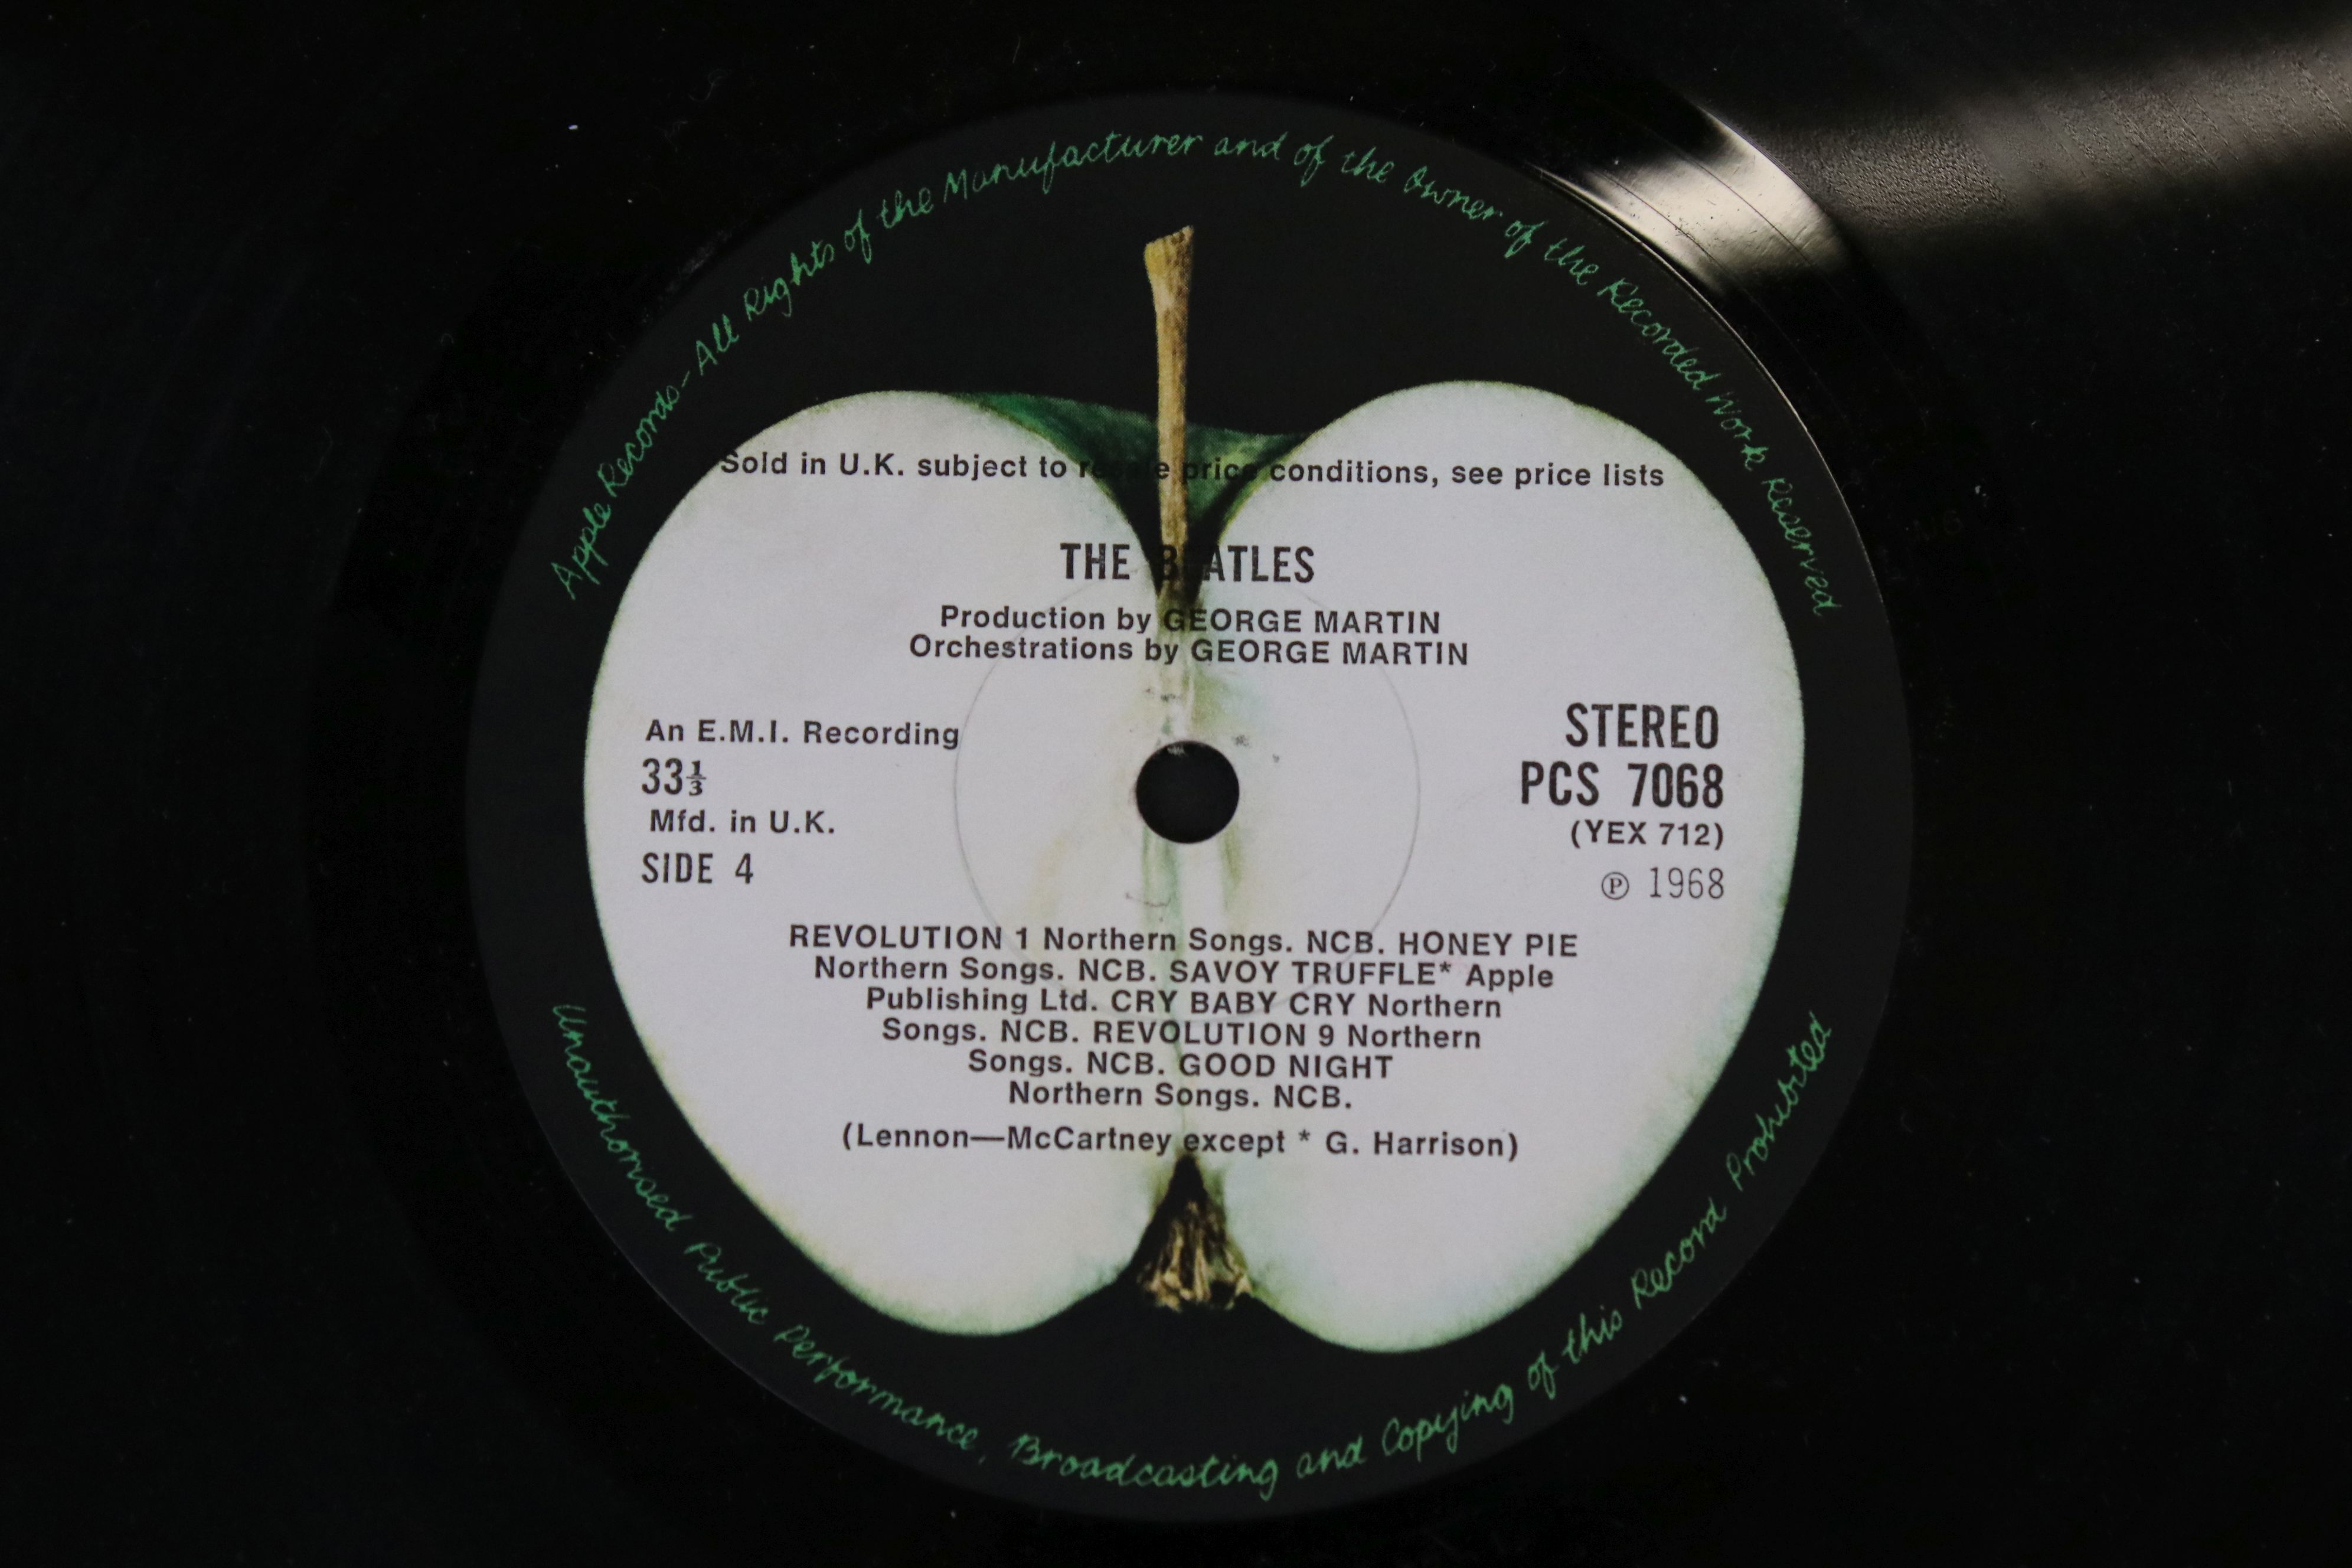 Vinyl - The Beatles White Album LP mono PMC7067-8, numbered 0001376 with 8 x coloured prints and - Image 5 of 10